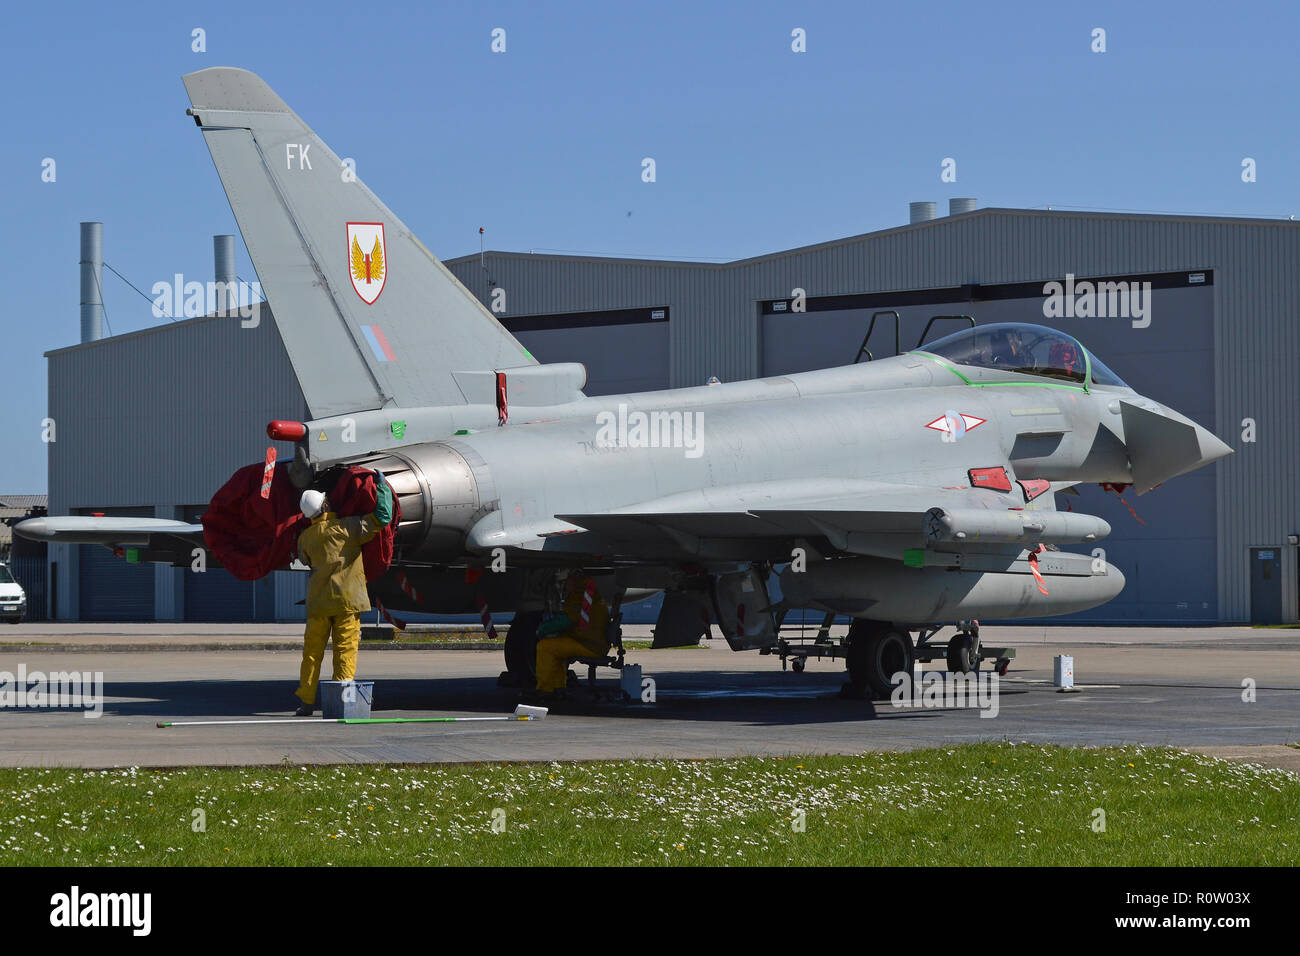 EUROFIGHTER TYPHOON GR4 serial number ZK325 at RAF 3 Squadron base